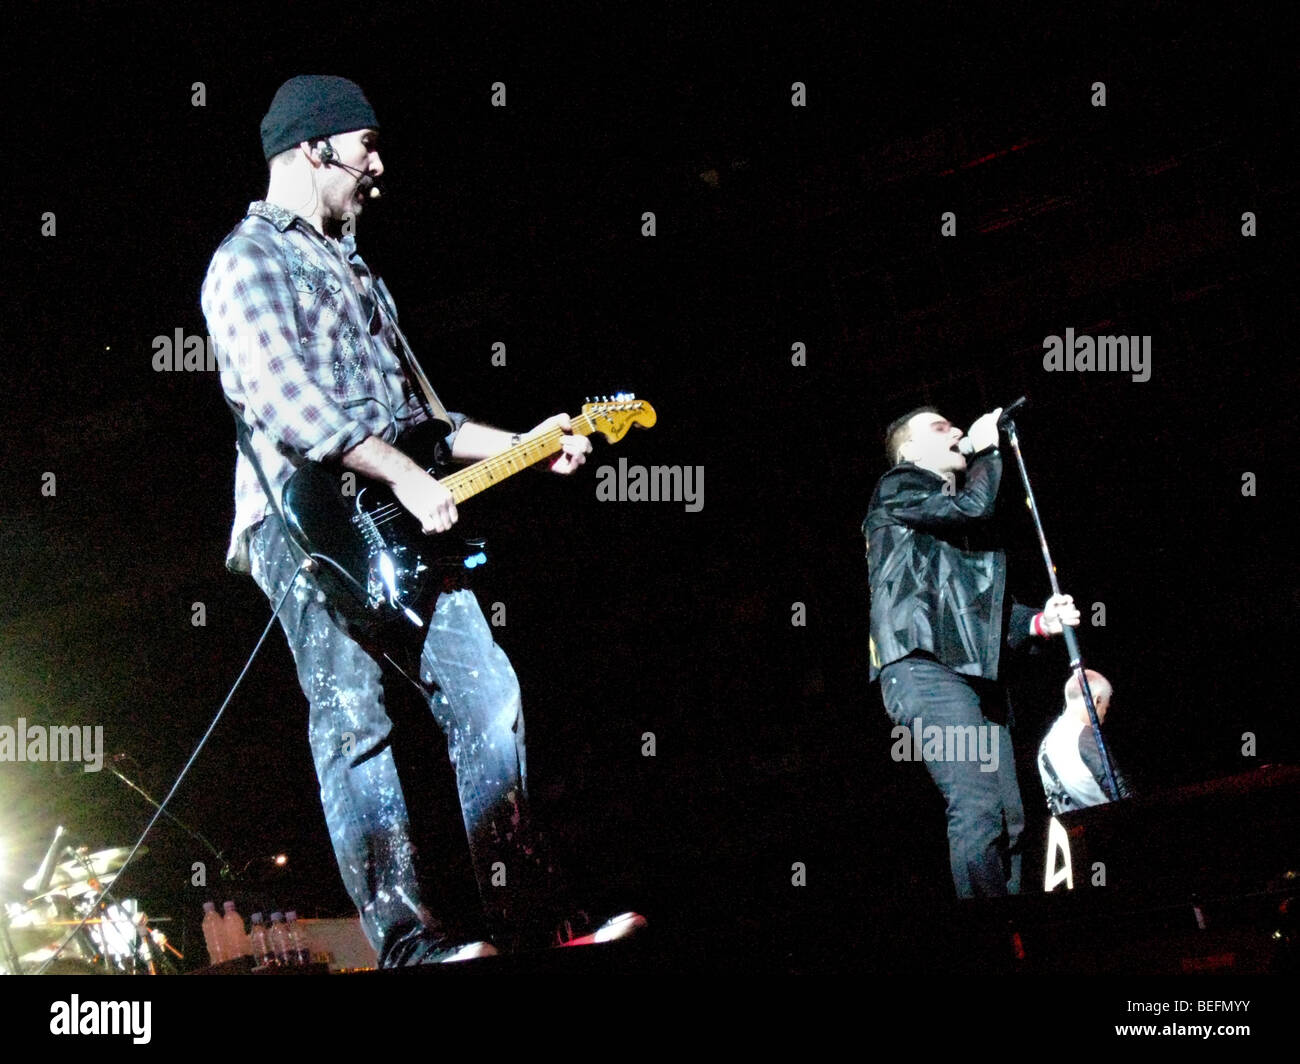 The Edge, guitarist of the Irish rock band U2, performs live with vocalist Bono and bassist Adam Clayton during - Stock Image